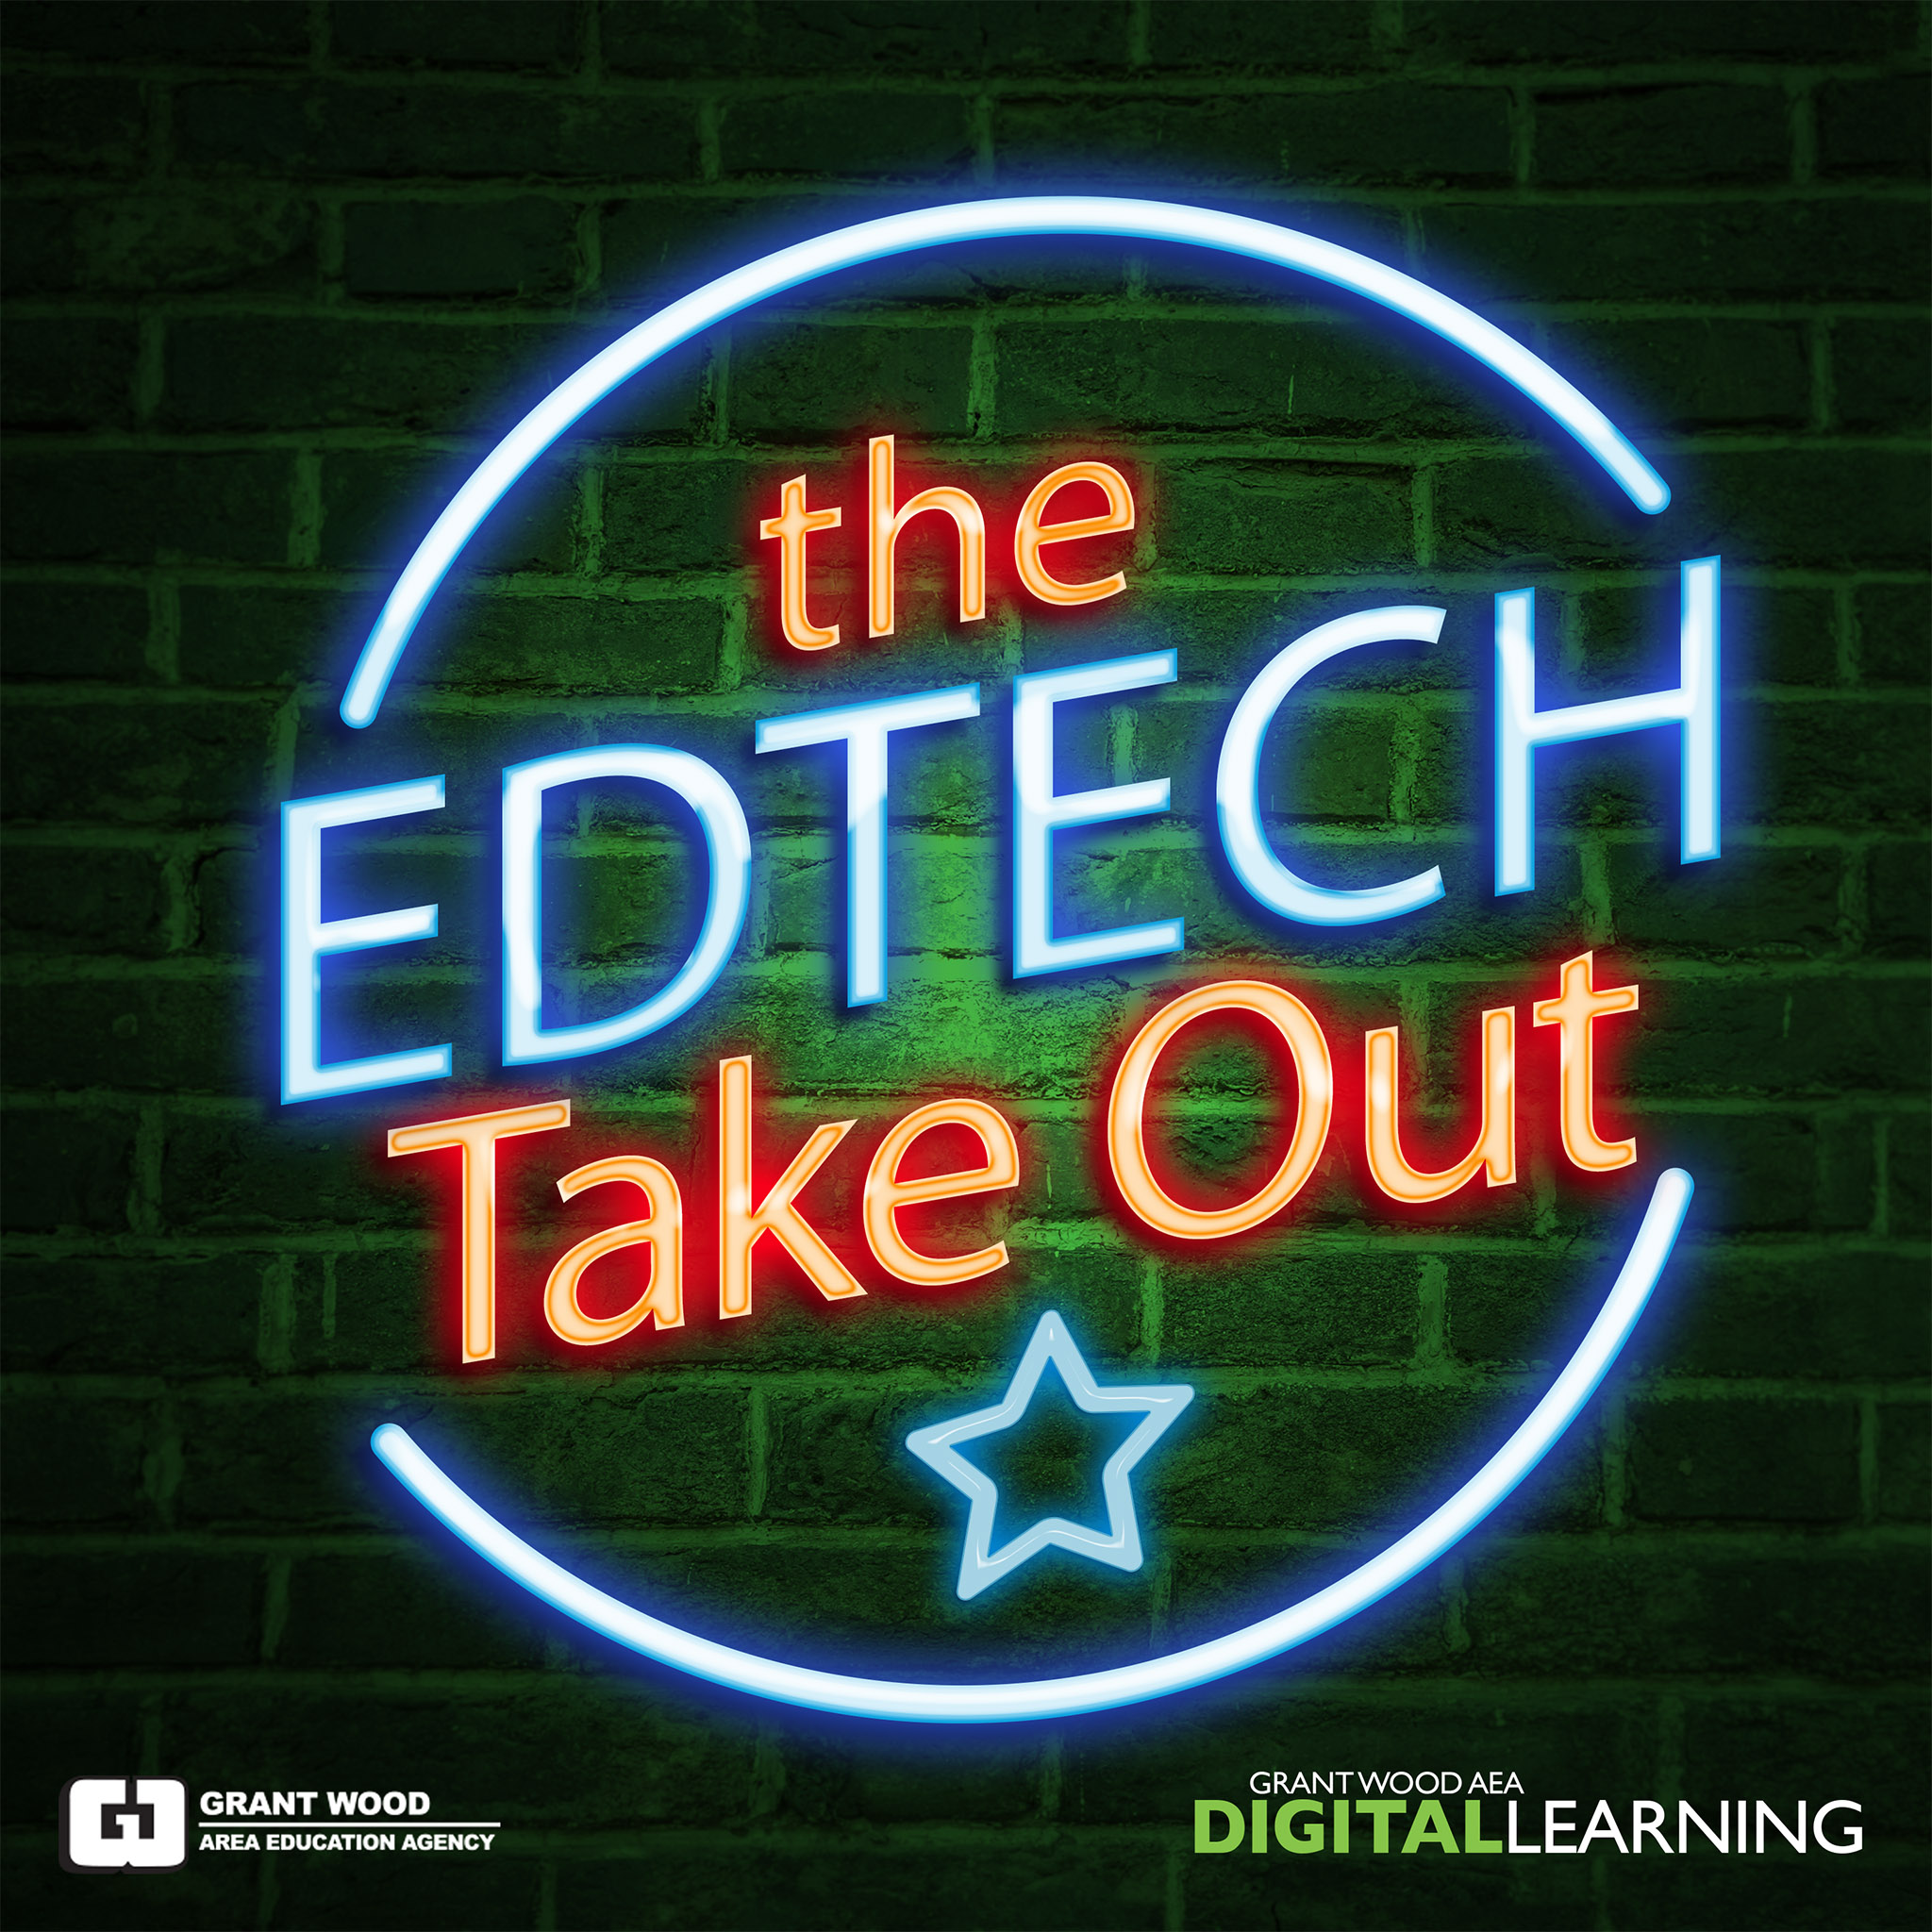 The EdTech Take Out